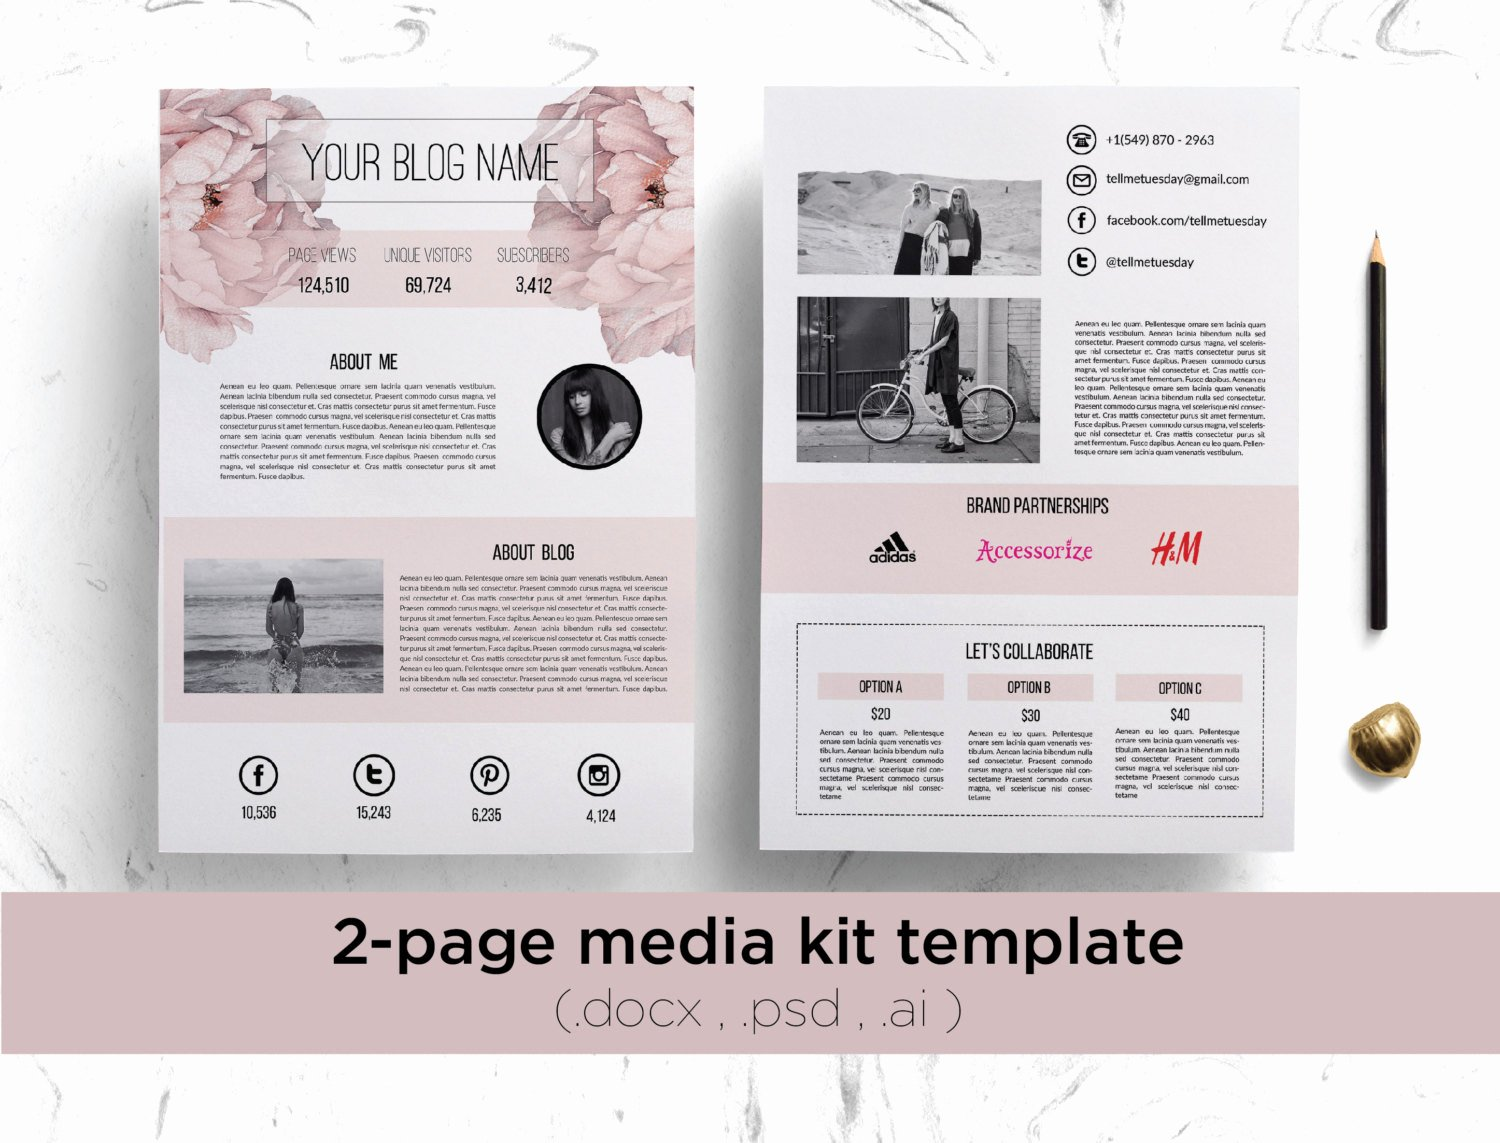 Press Kit Template Free Luxury 2 Page Media Kit Template Floral Background Elegant Blog